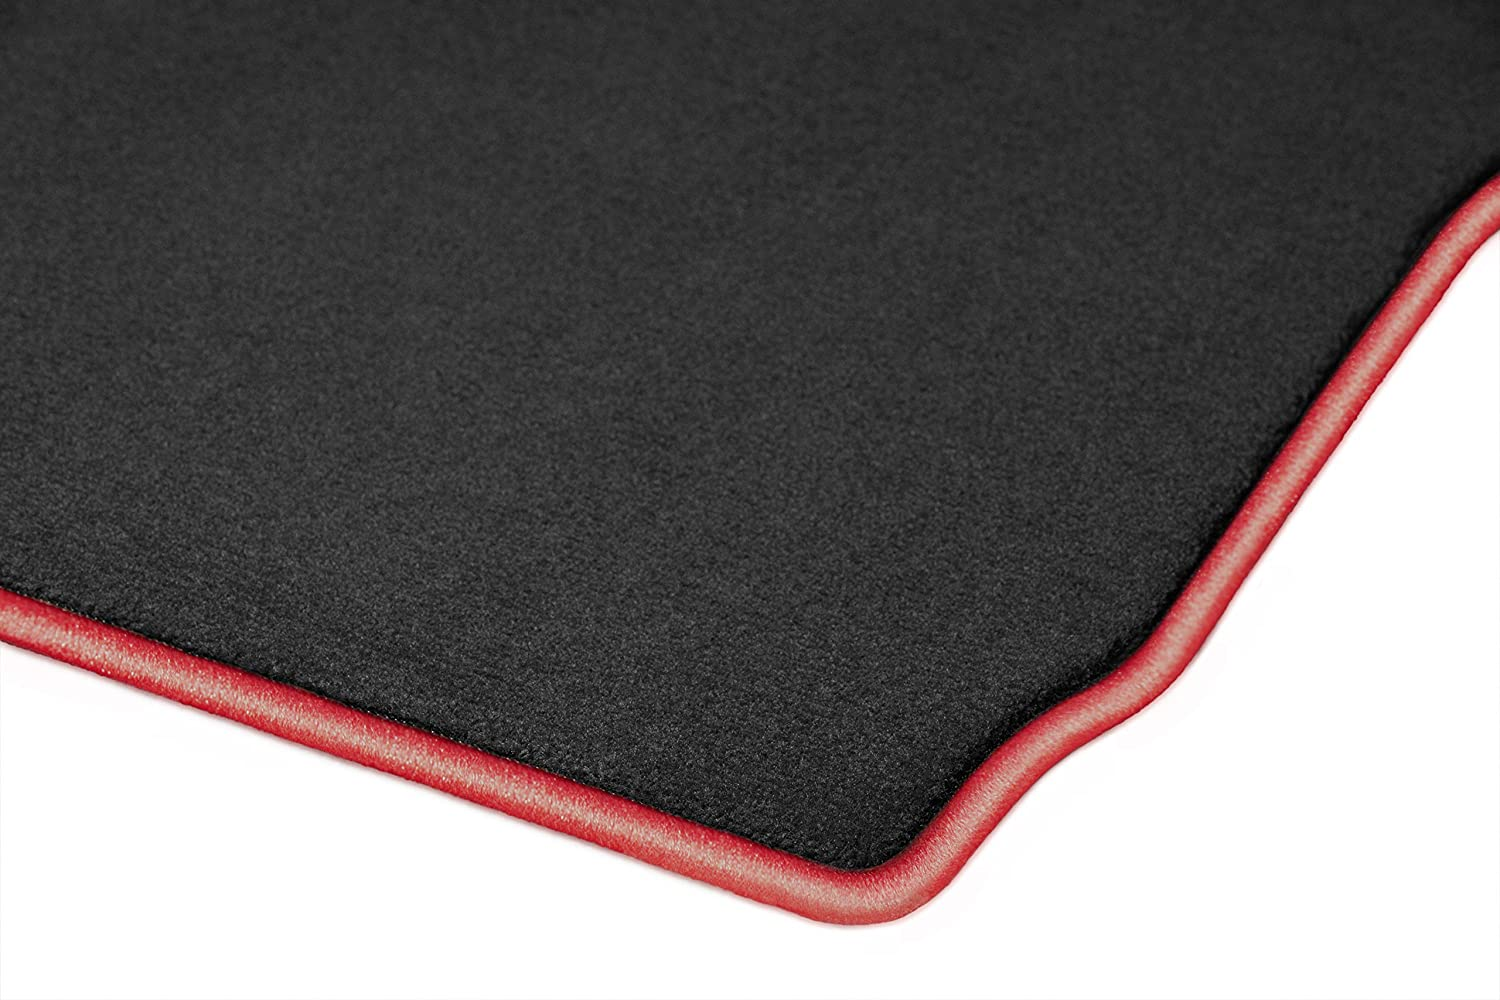 GGBAILEY D2427A-F1A-BLK/_BR Custom Fit Automotive Carpet Floor Mats for 1996 2000 Dodge Grand Caravan Black with Red Edging Driver /& Passenger 1998 1999 1997